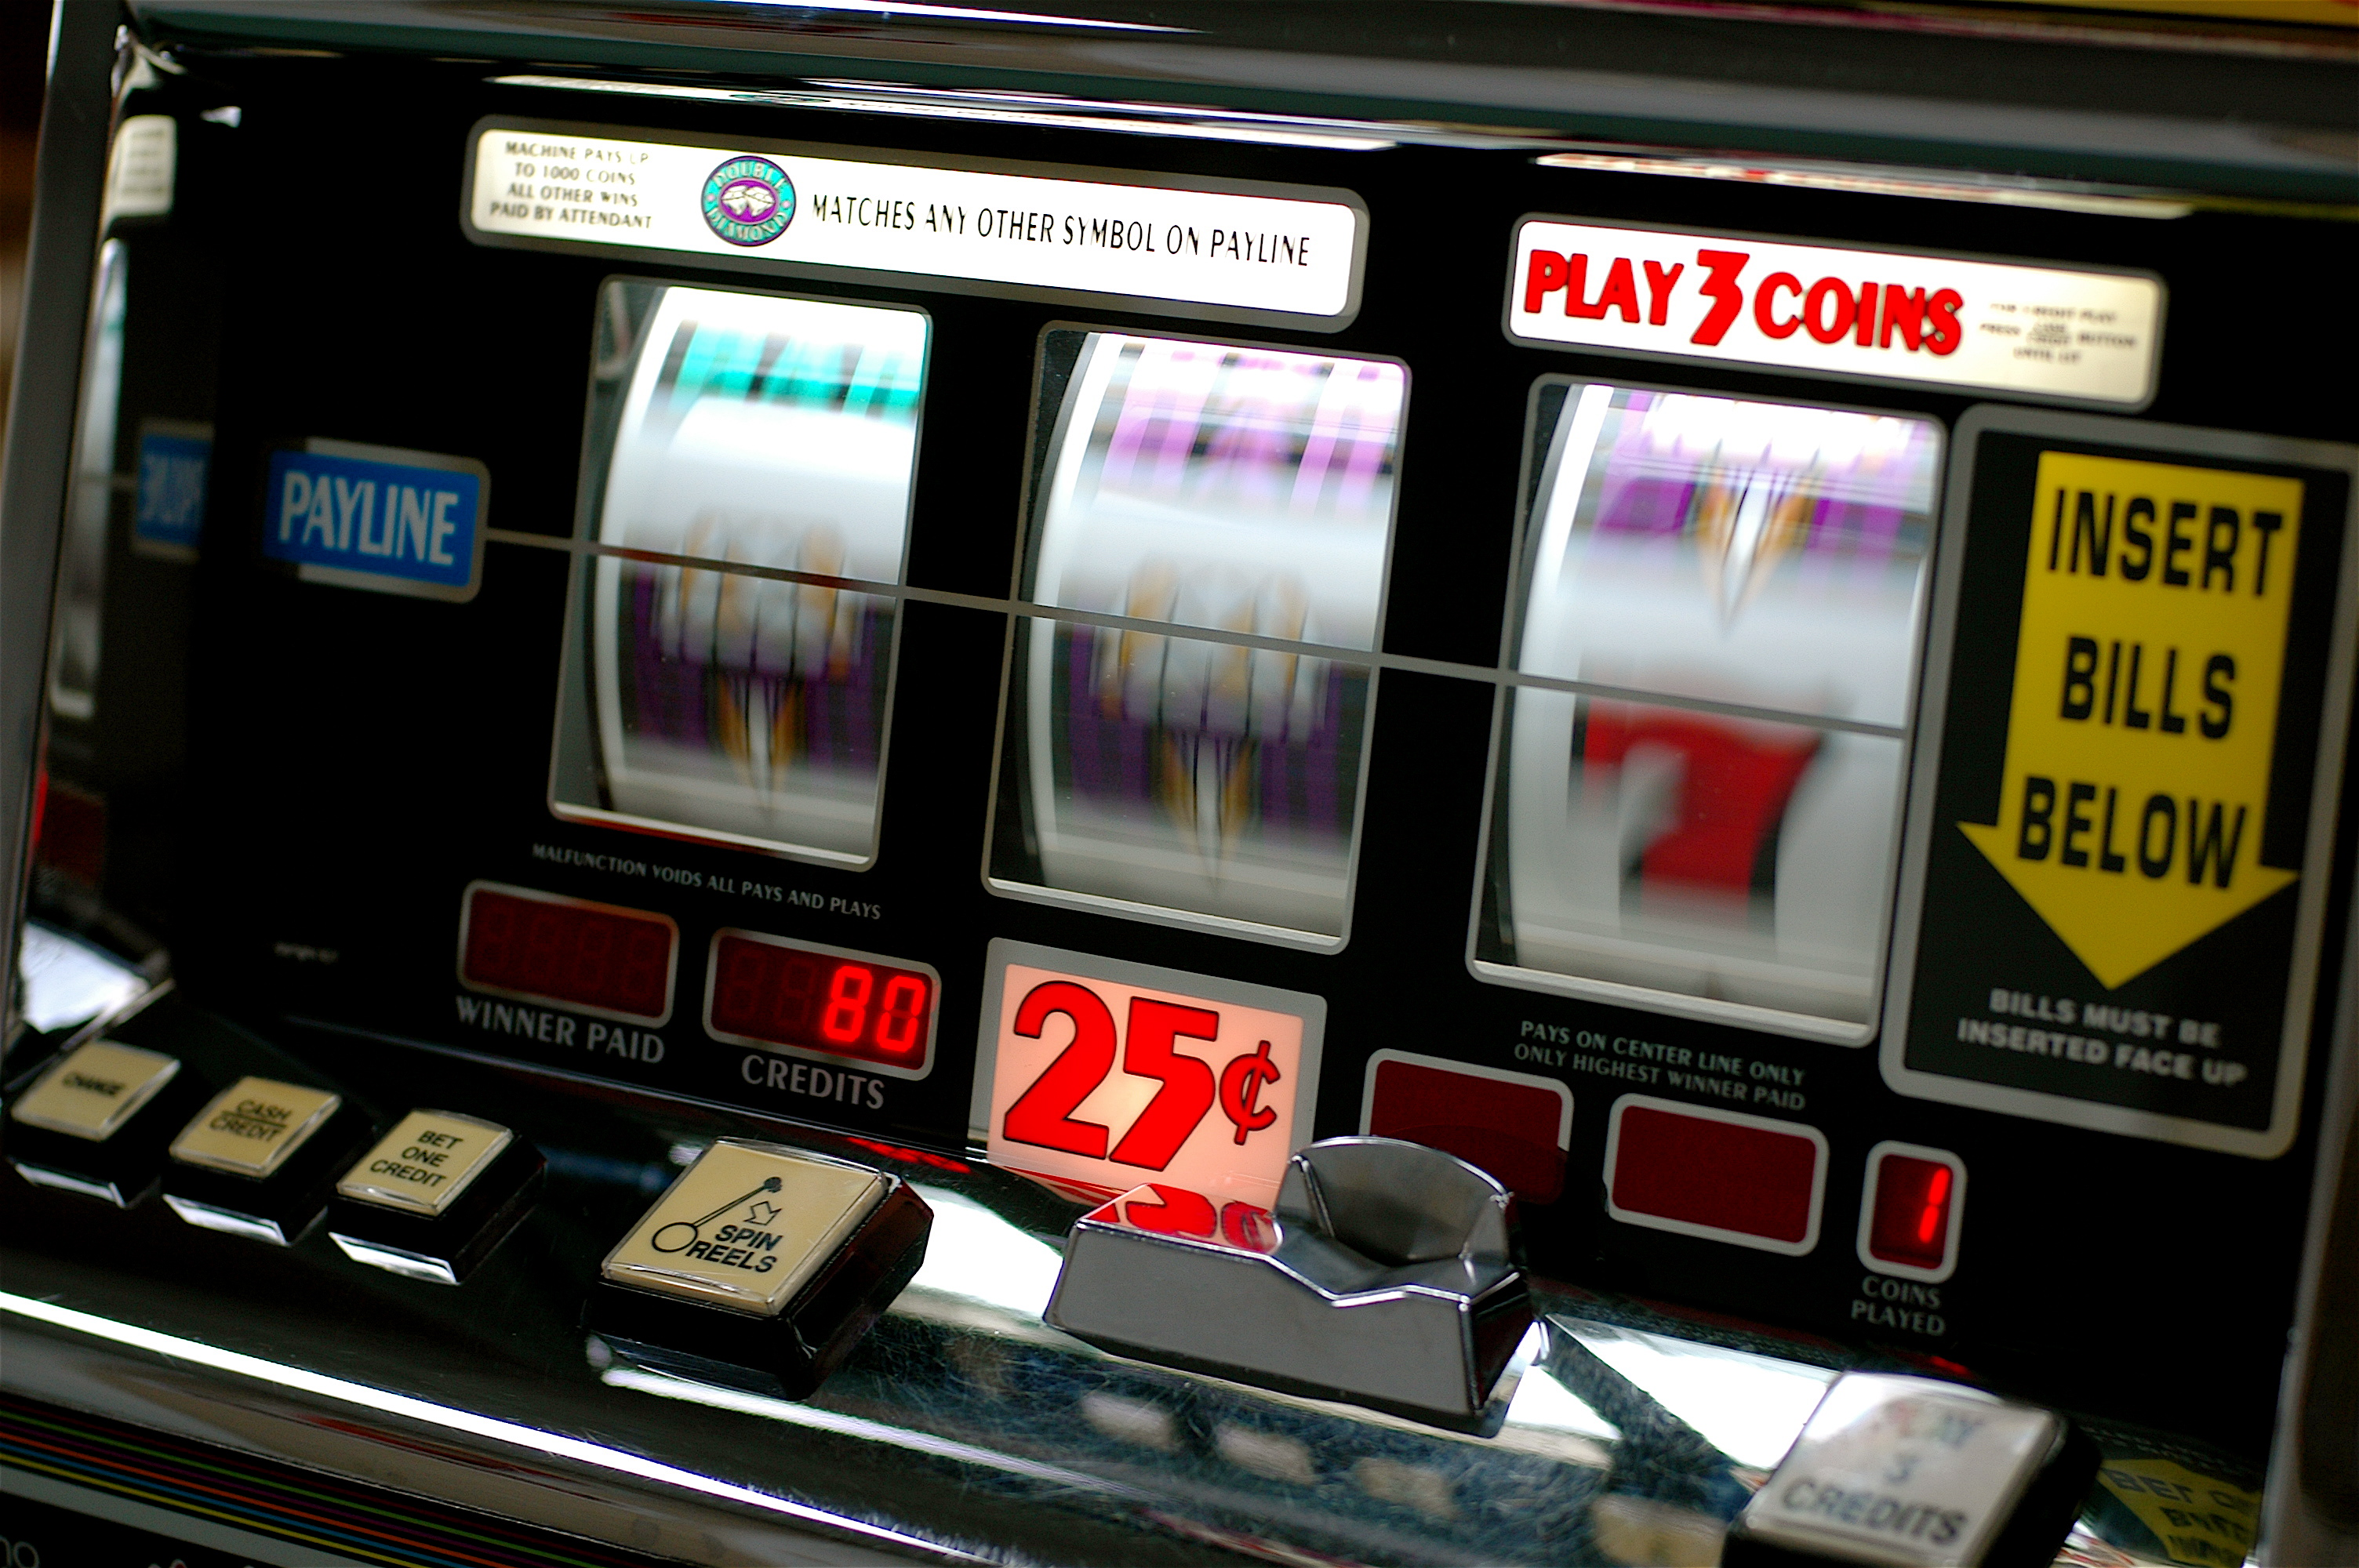 The Best Slots Strategy (And Tips) to Win Big